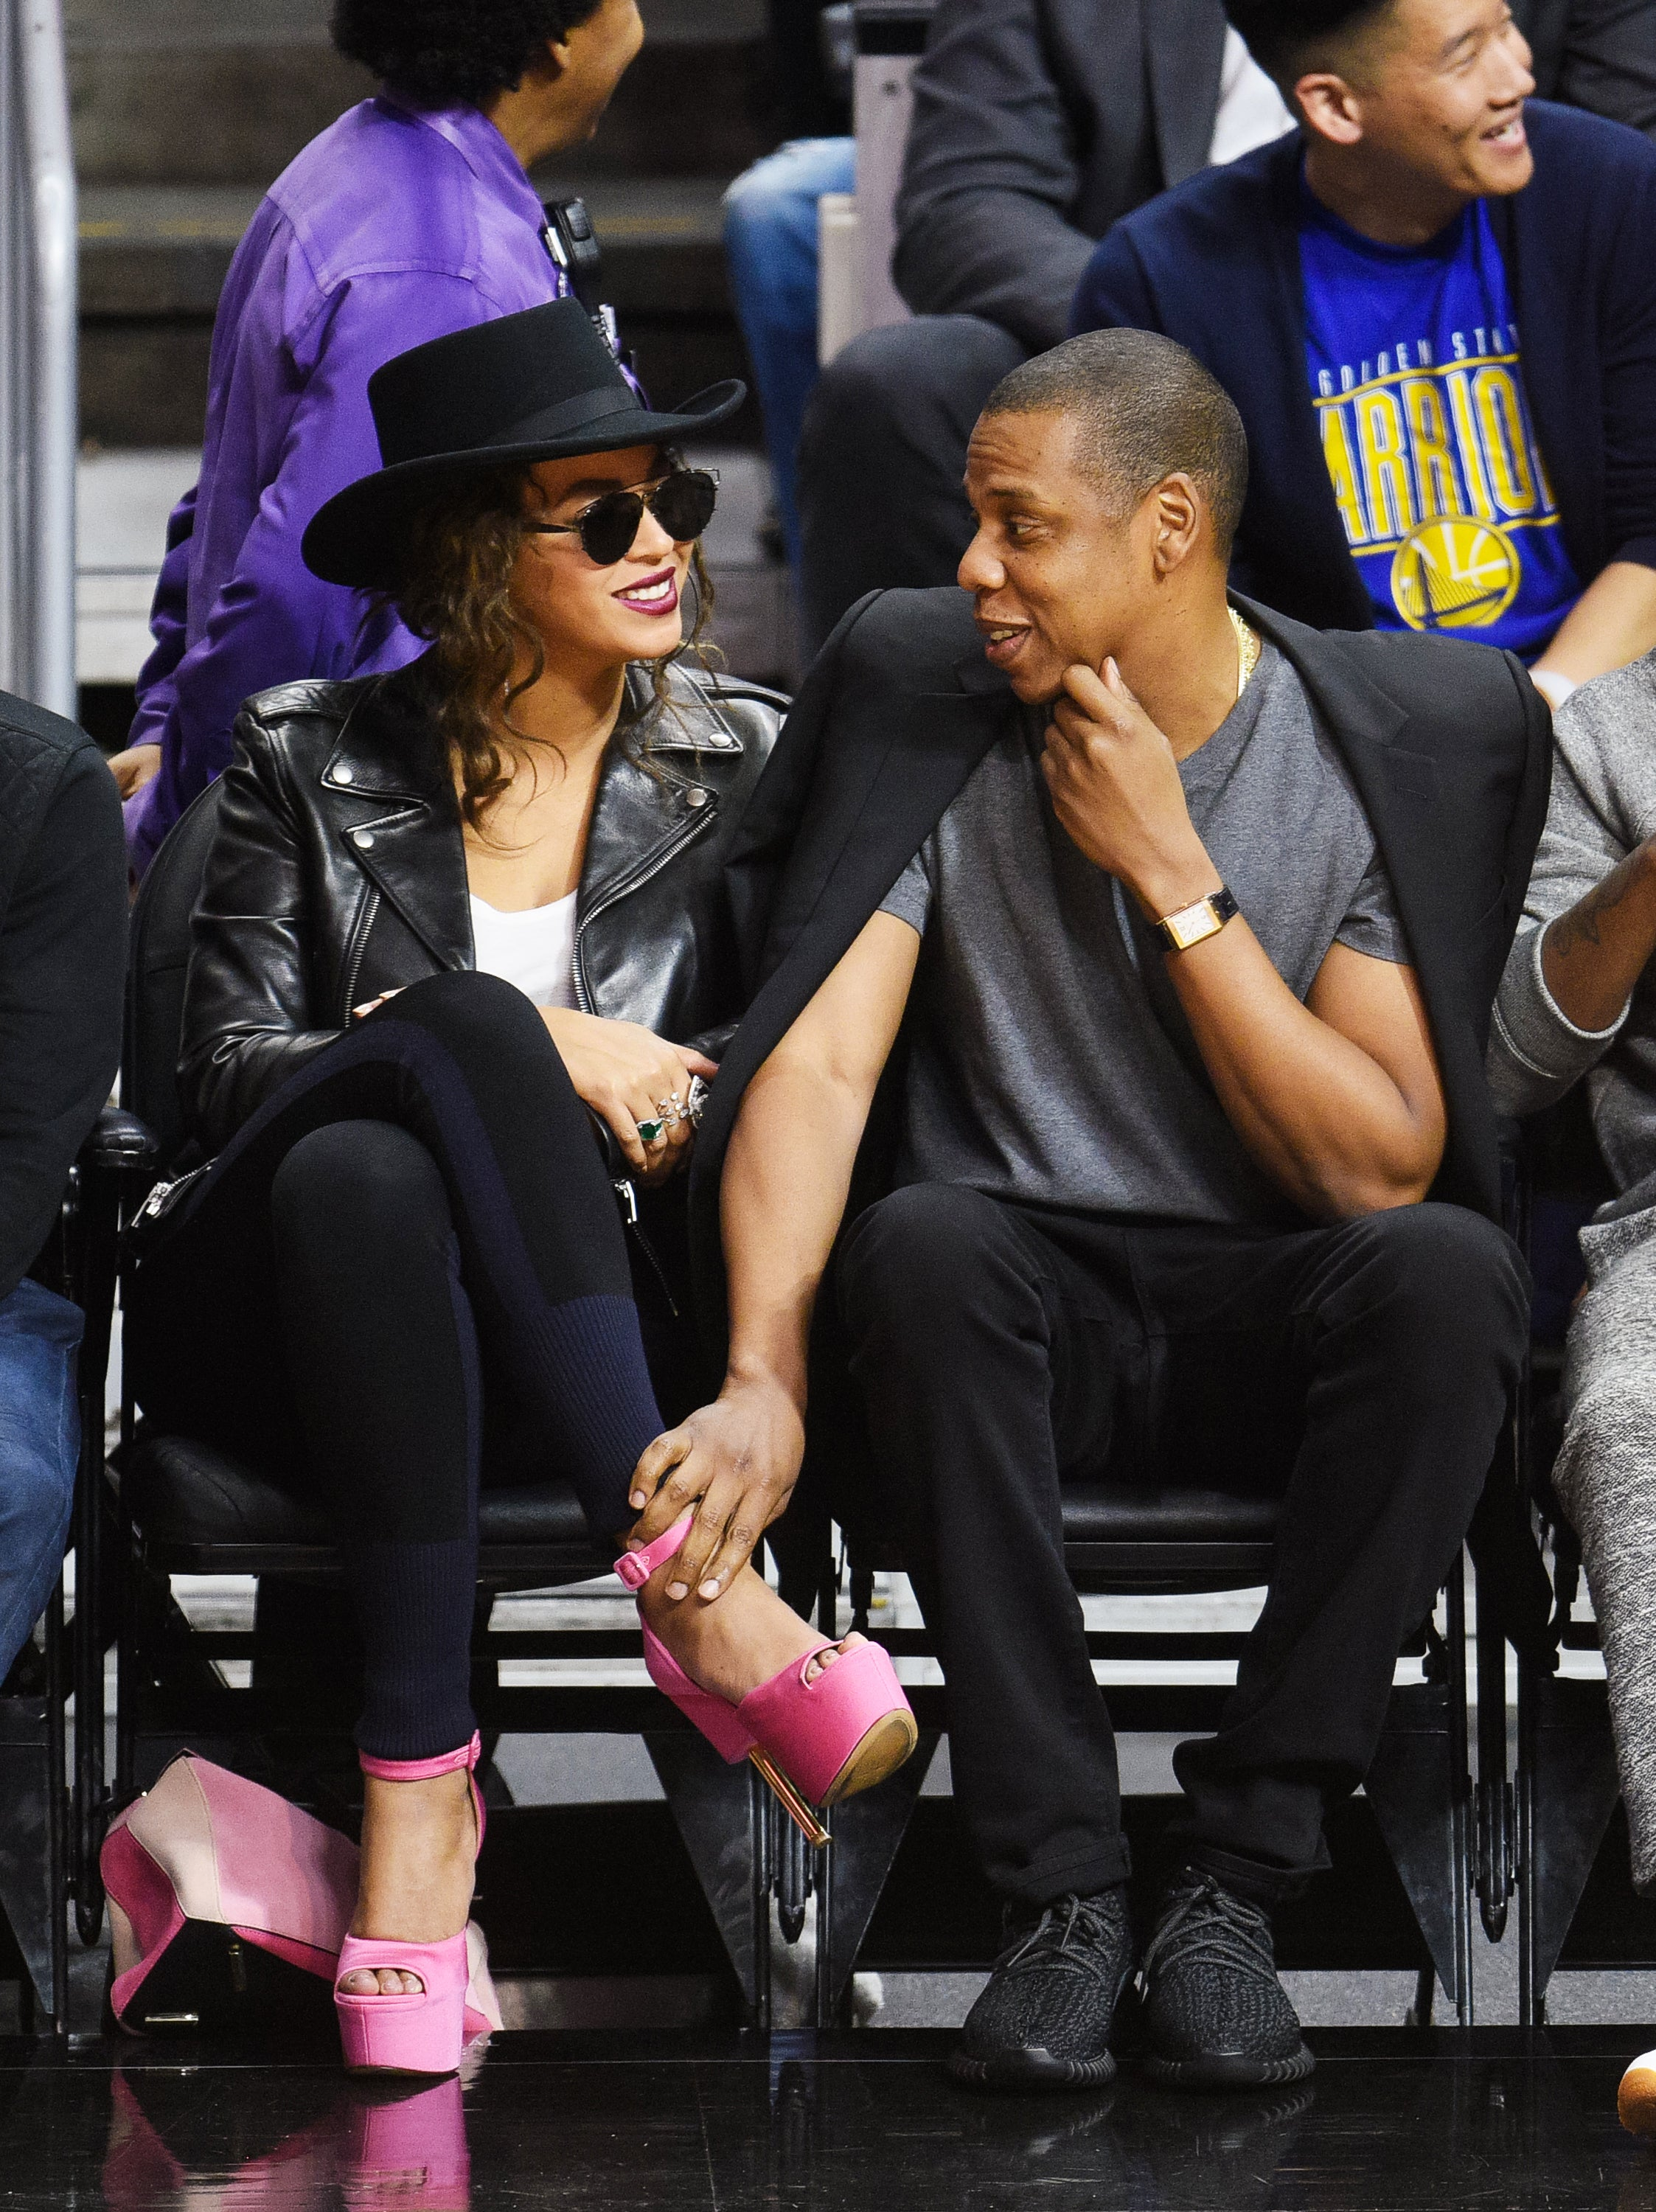 Best Photos Of Beyonce and Jay Z Courtside at NBA Games Over